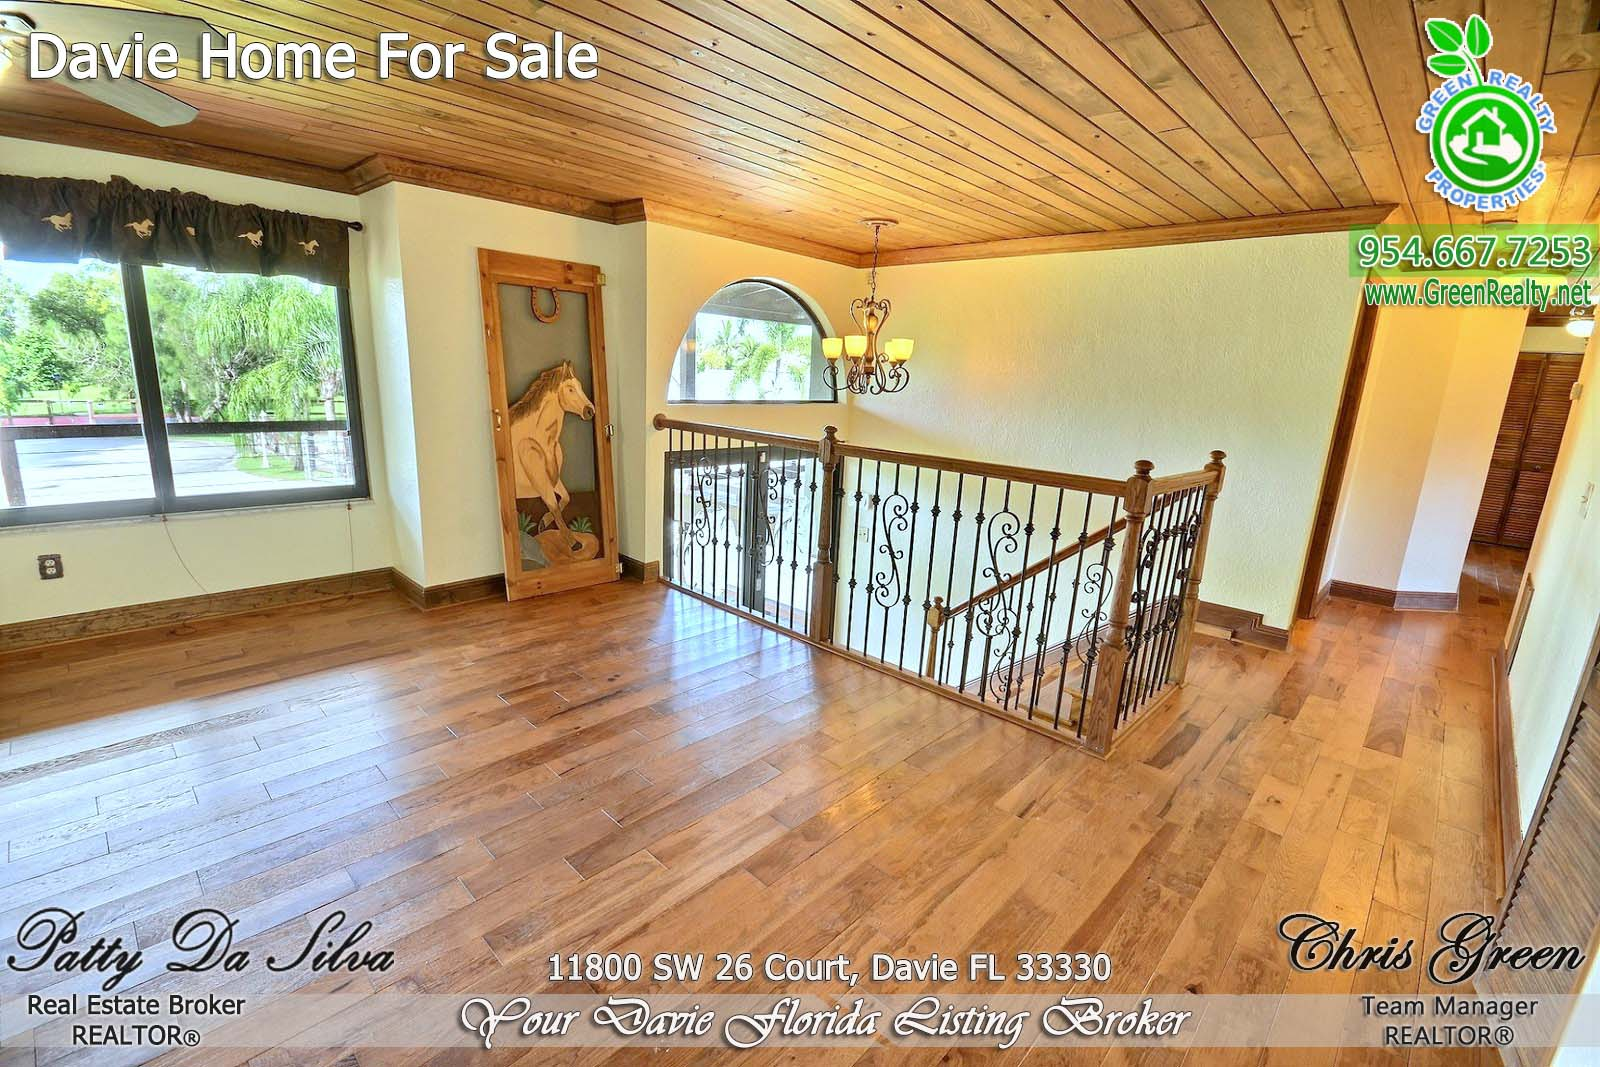 21 Davie Equestrian Homes For Sale (4)